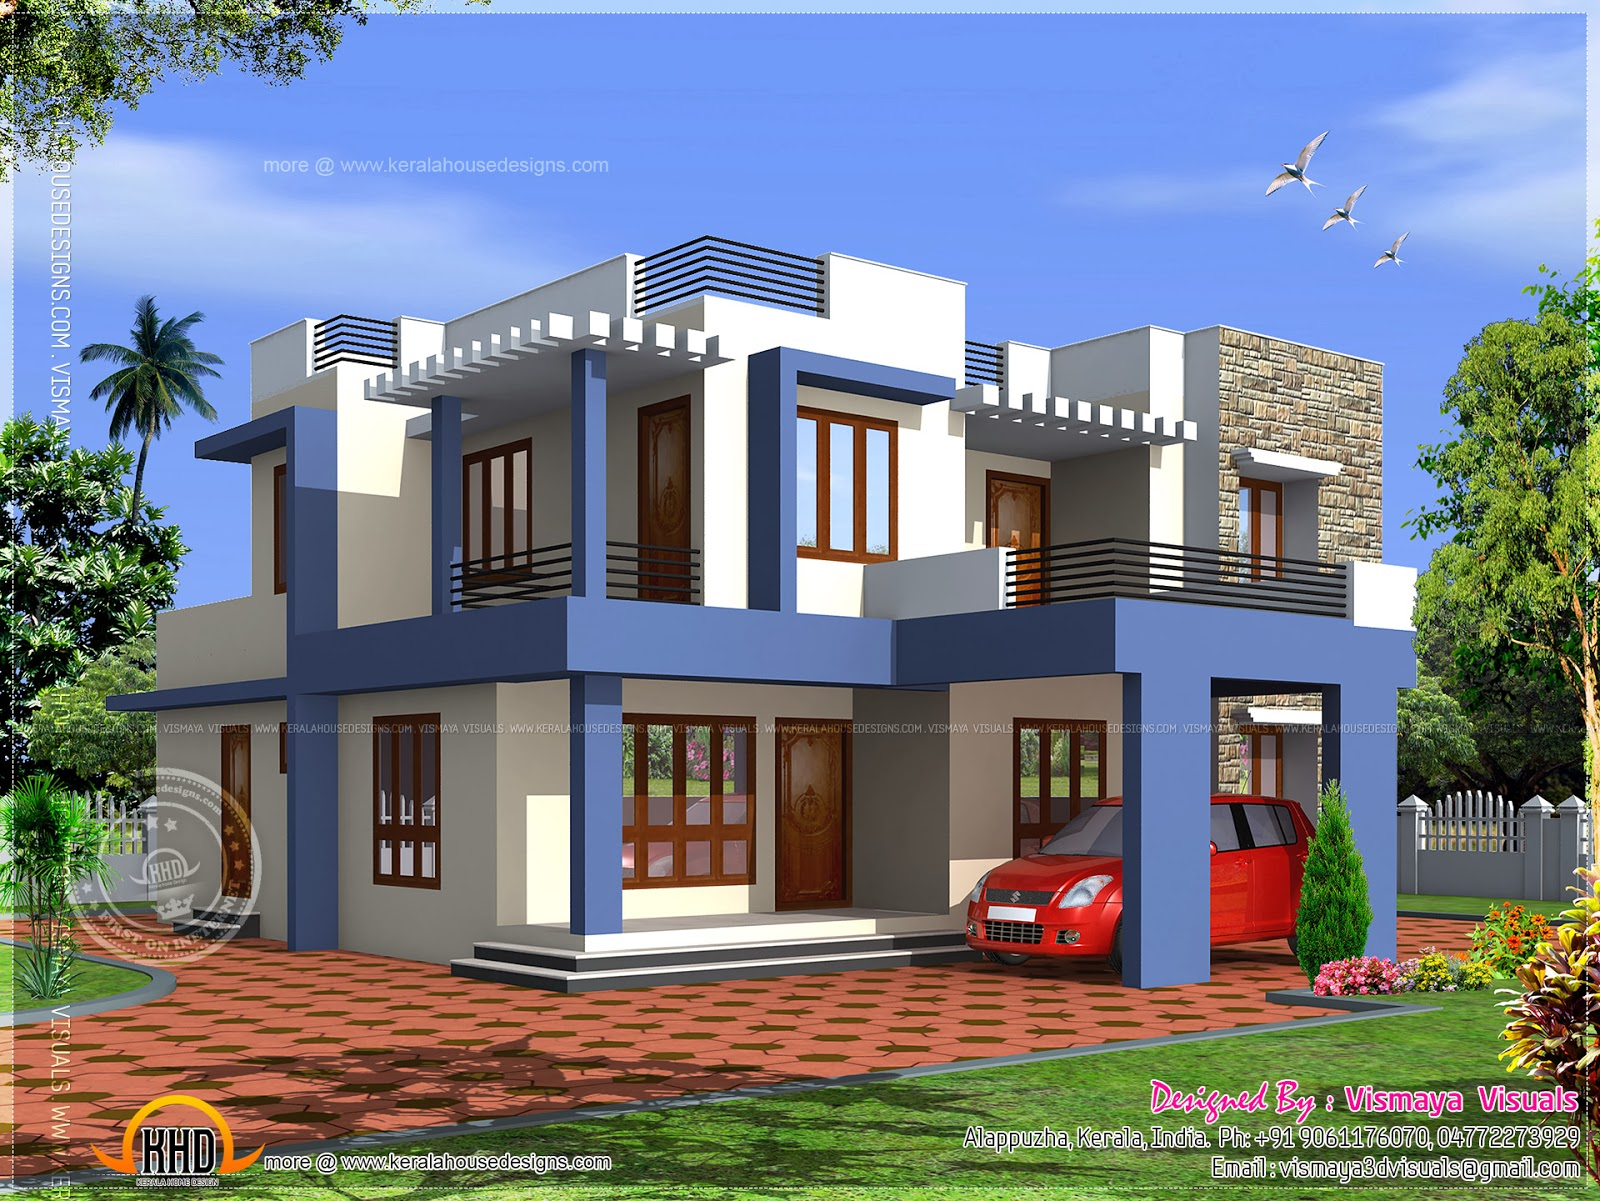 Box type 4 bedroom villa kerala home design and floor plans for Types house designs